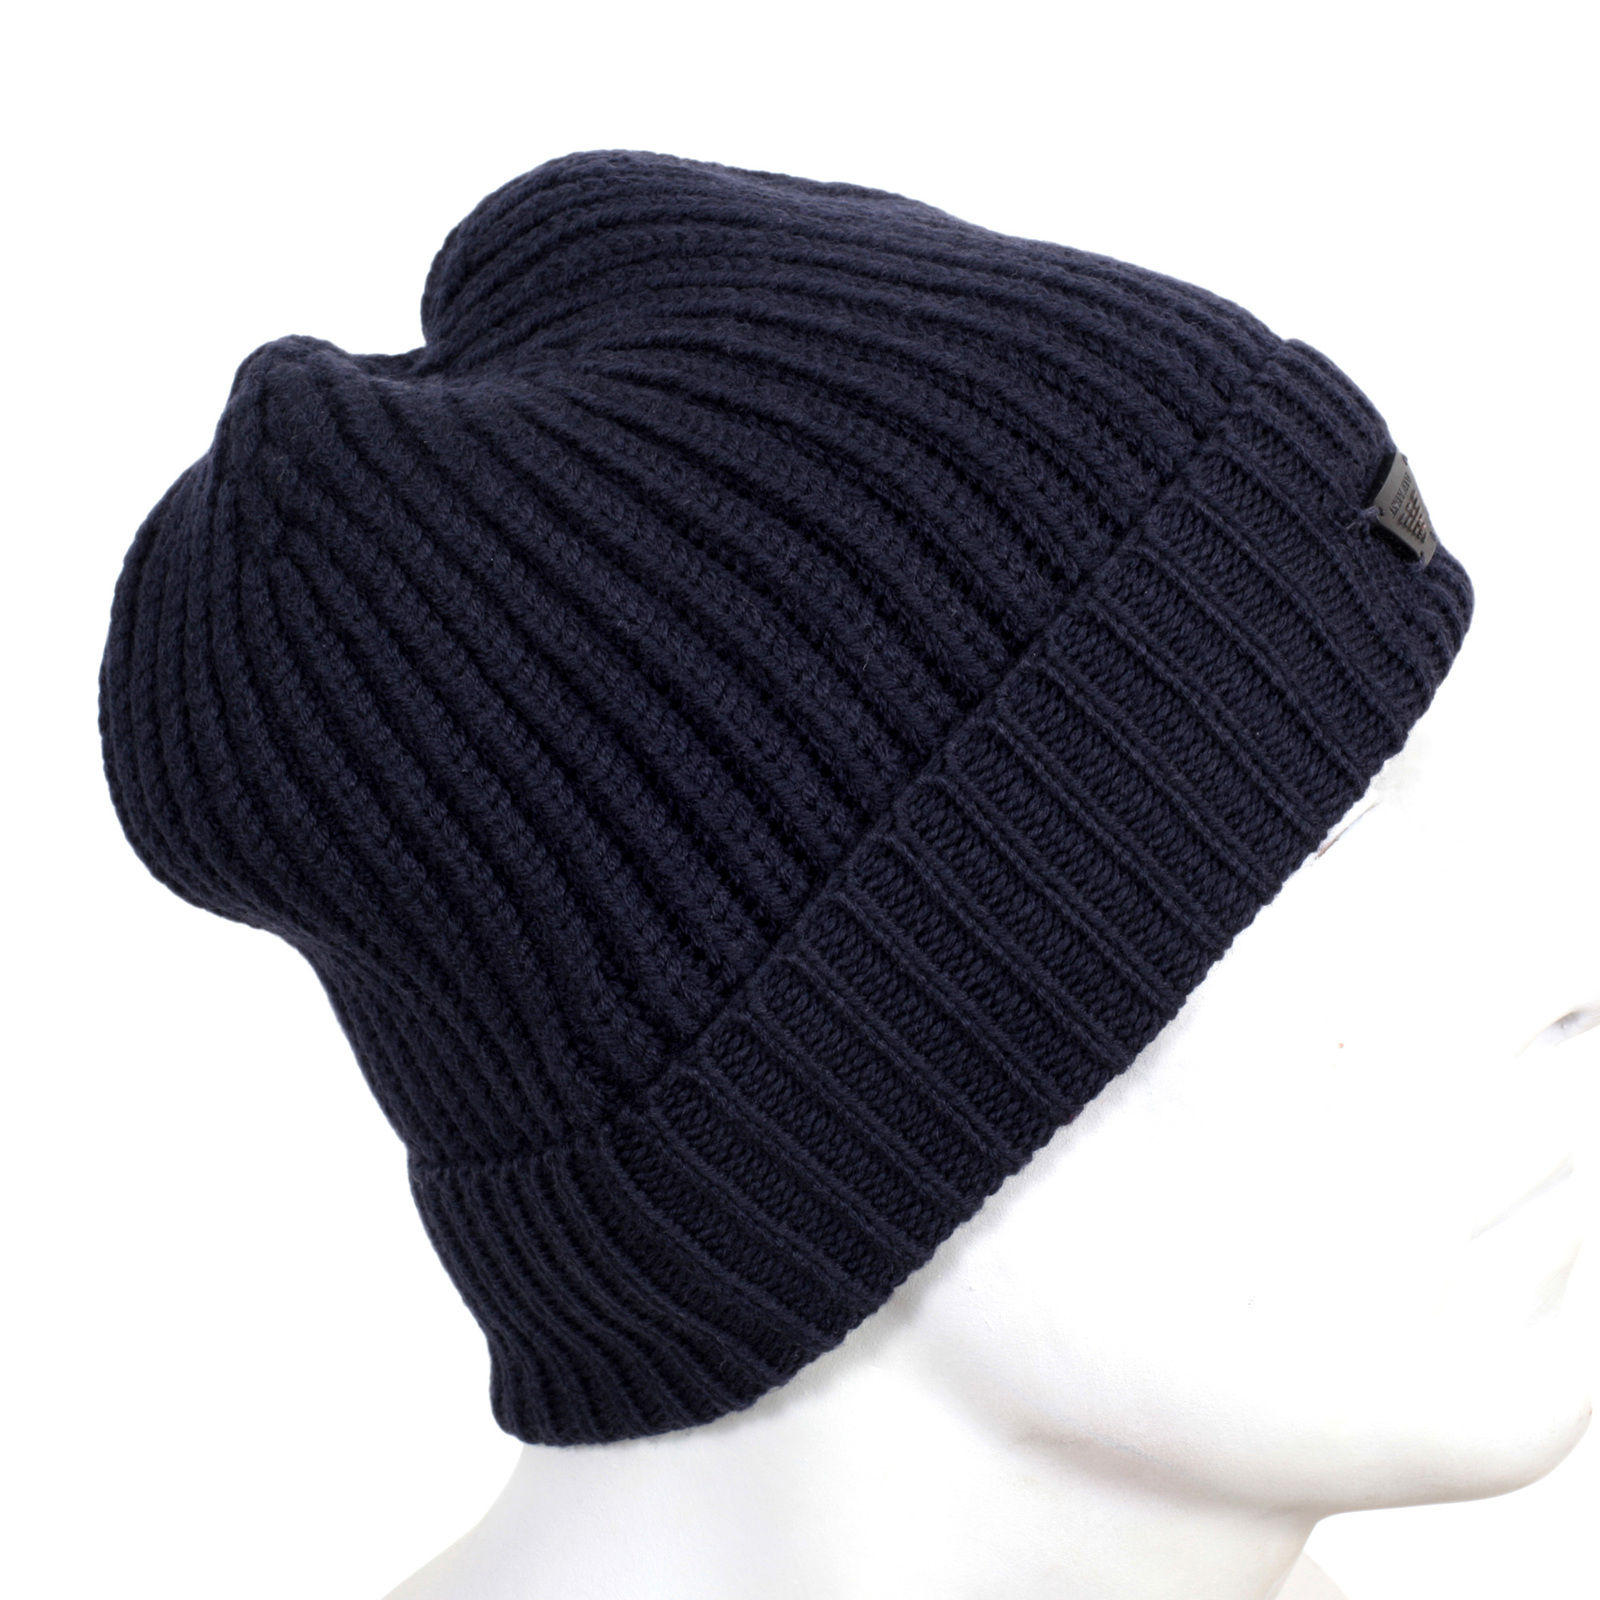 Armani Jeans 934029 6A757 Navy 100% Wool Knit Ribbed Beanie Hat with  Signature Logo Applique 9adb1c6f6ce